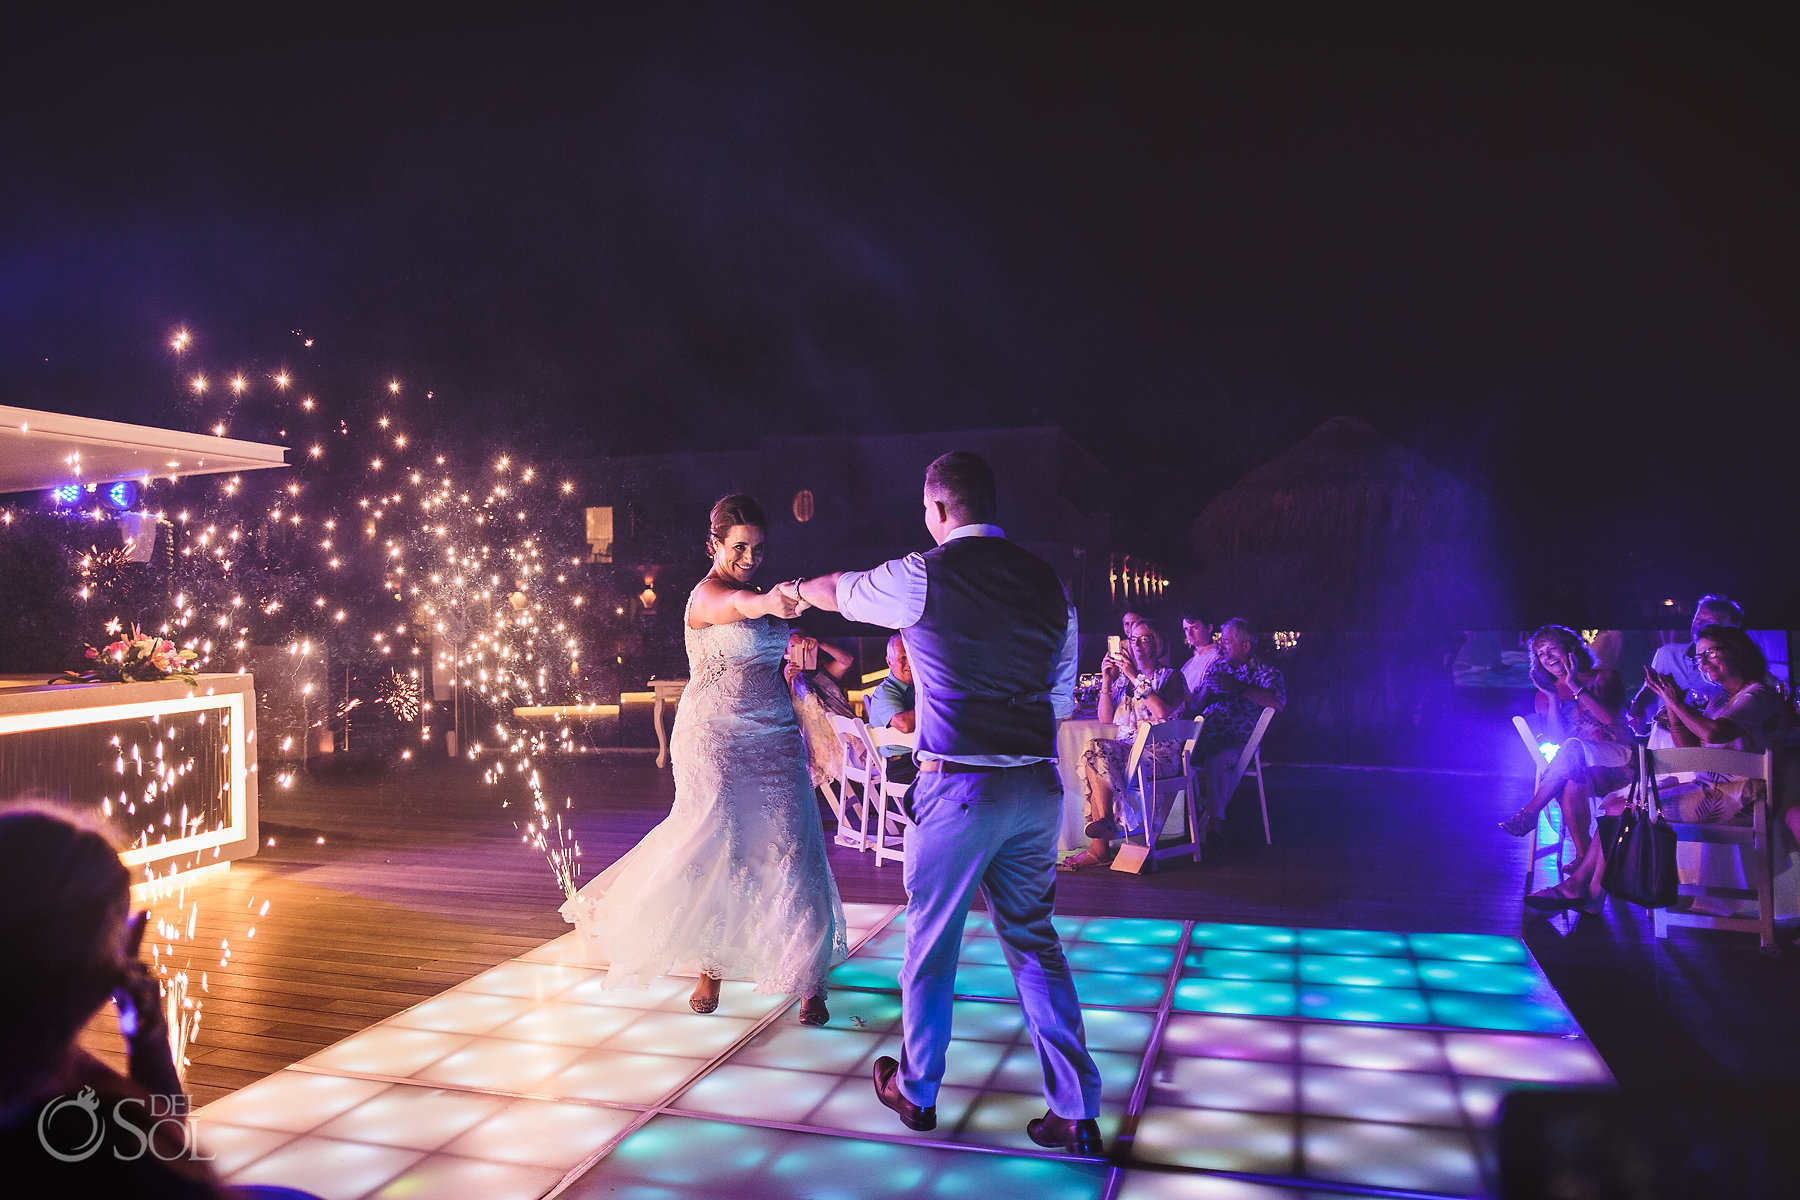 dreams tulum wedding sunset terrace newlyweds first dance fireworks